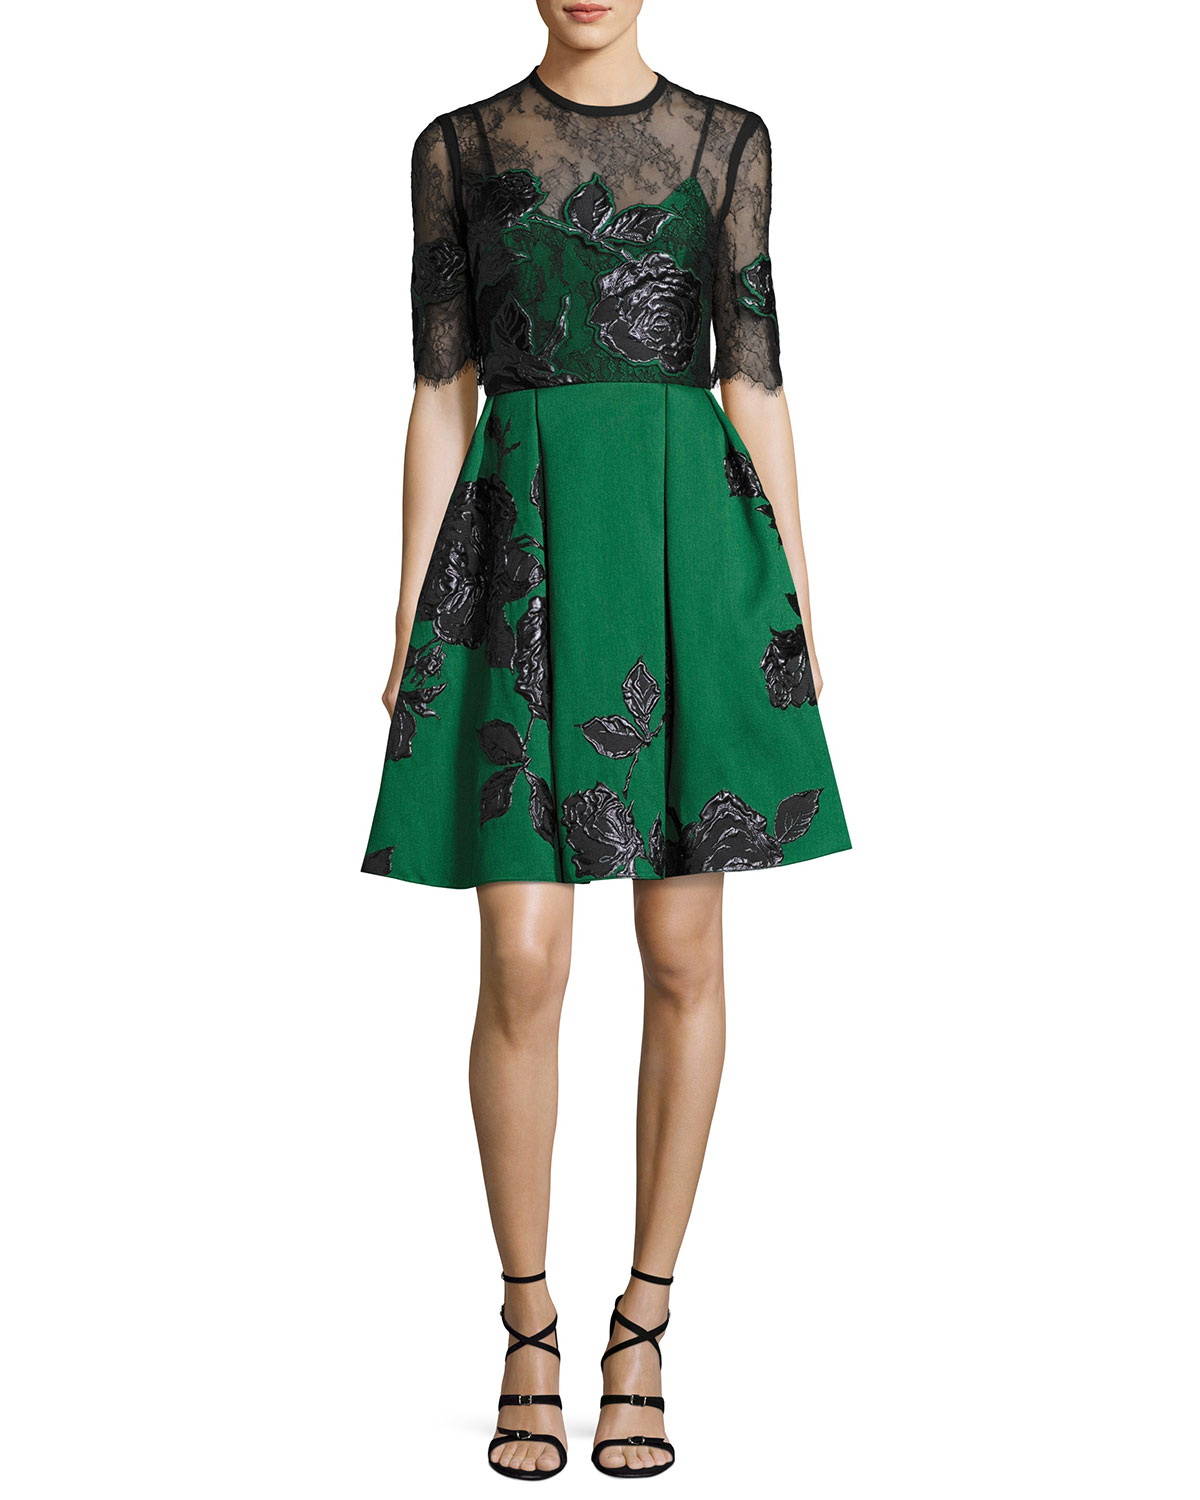 Floral Jacquard Cocktail Dress with Lace Bodice, Green/Black